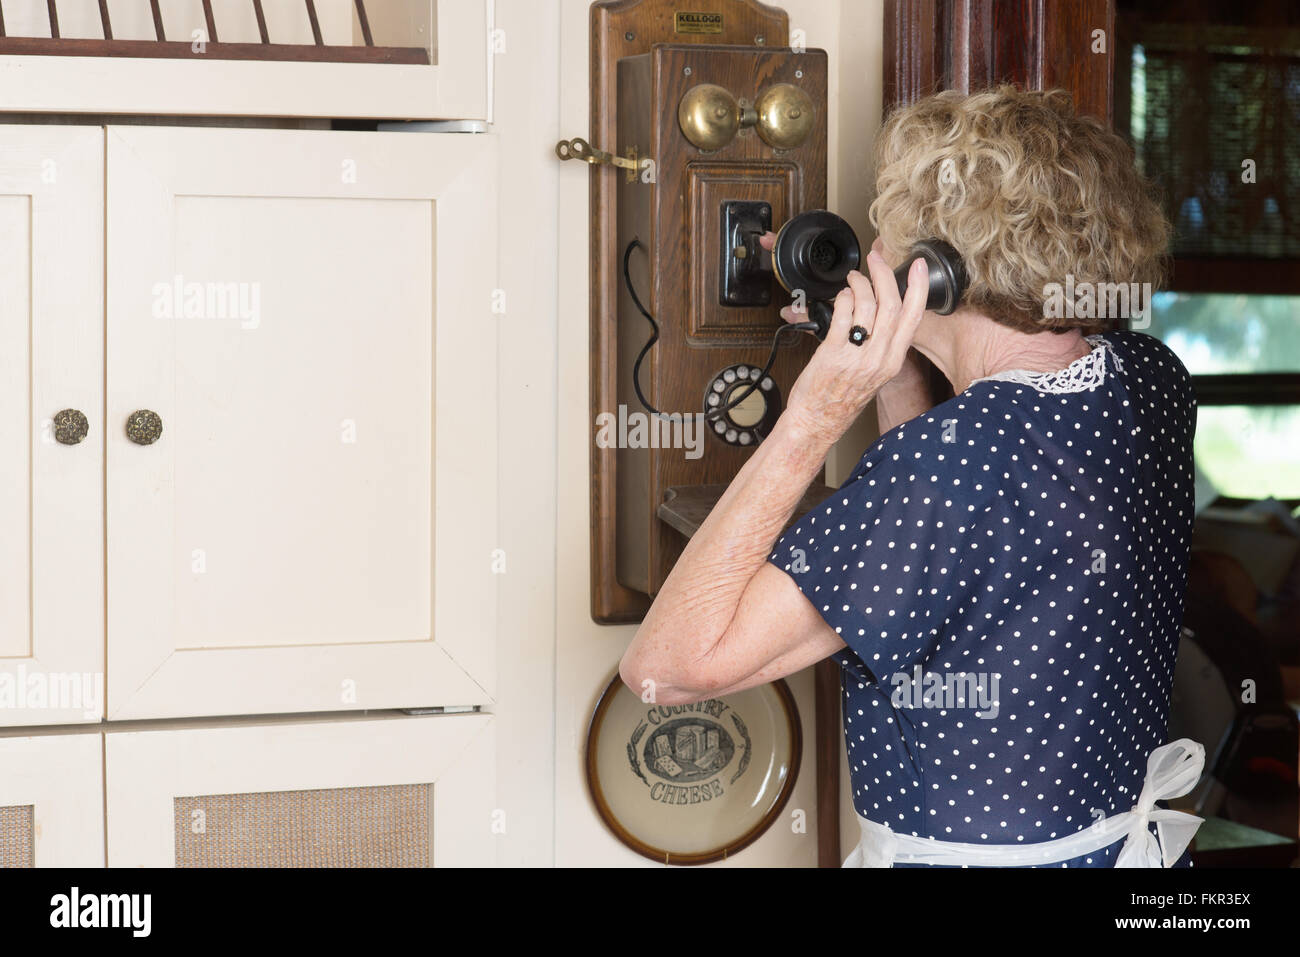 A woman in period dress talking on an old-fashioned antique wall phone - Stock Image